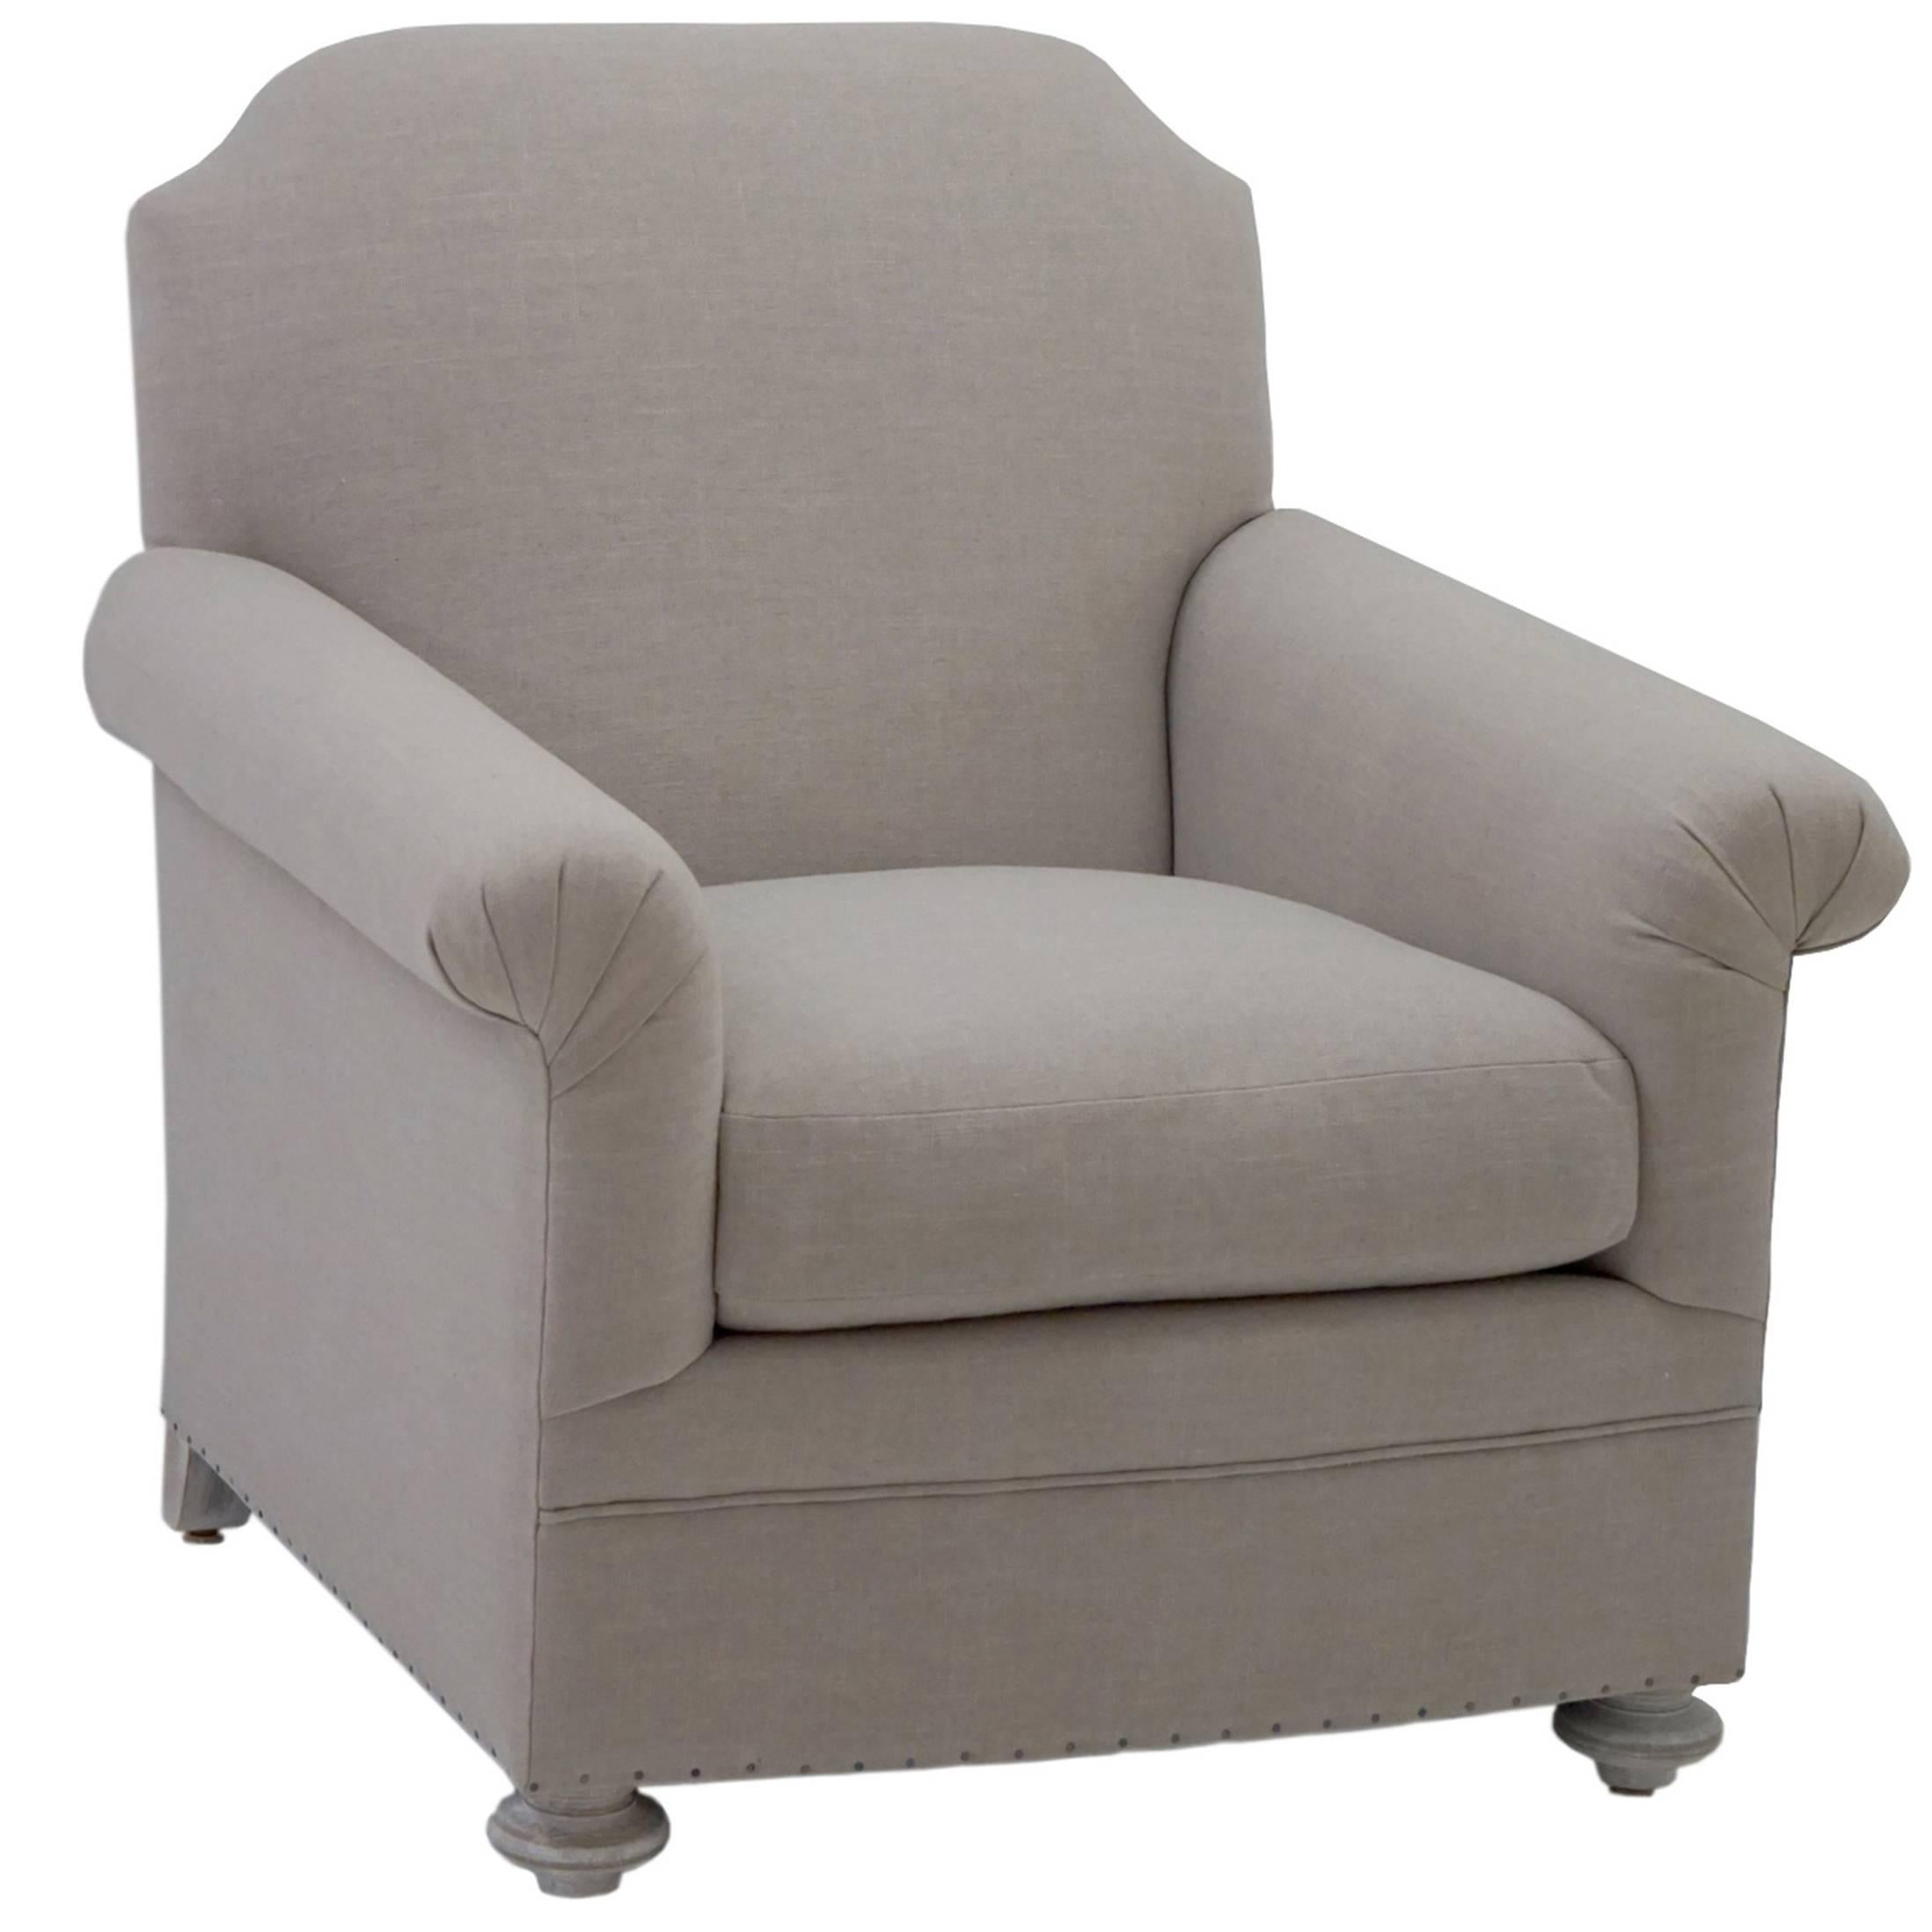 Upholstered Club Chair, Customizable